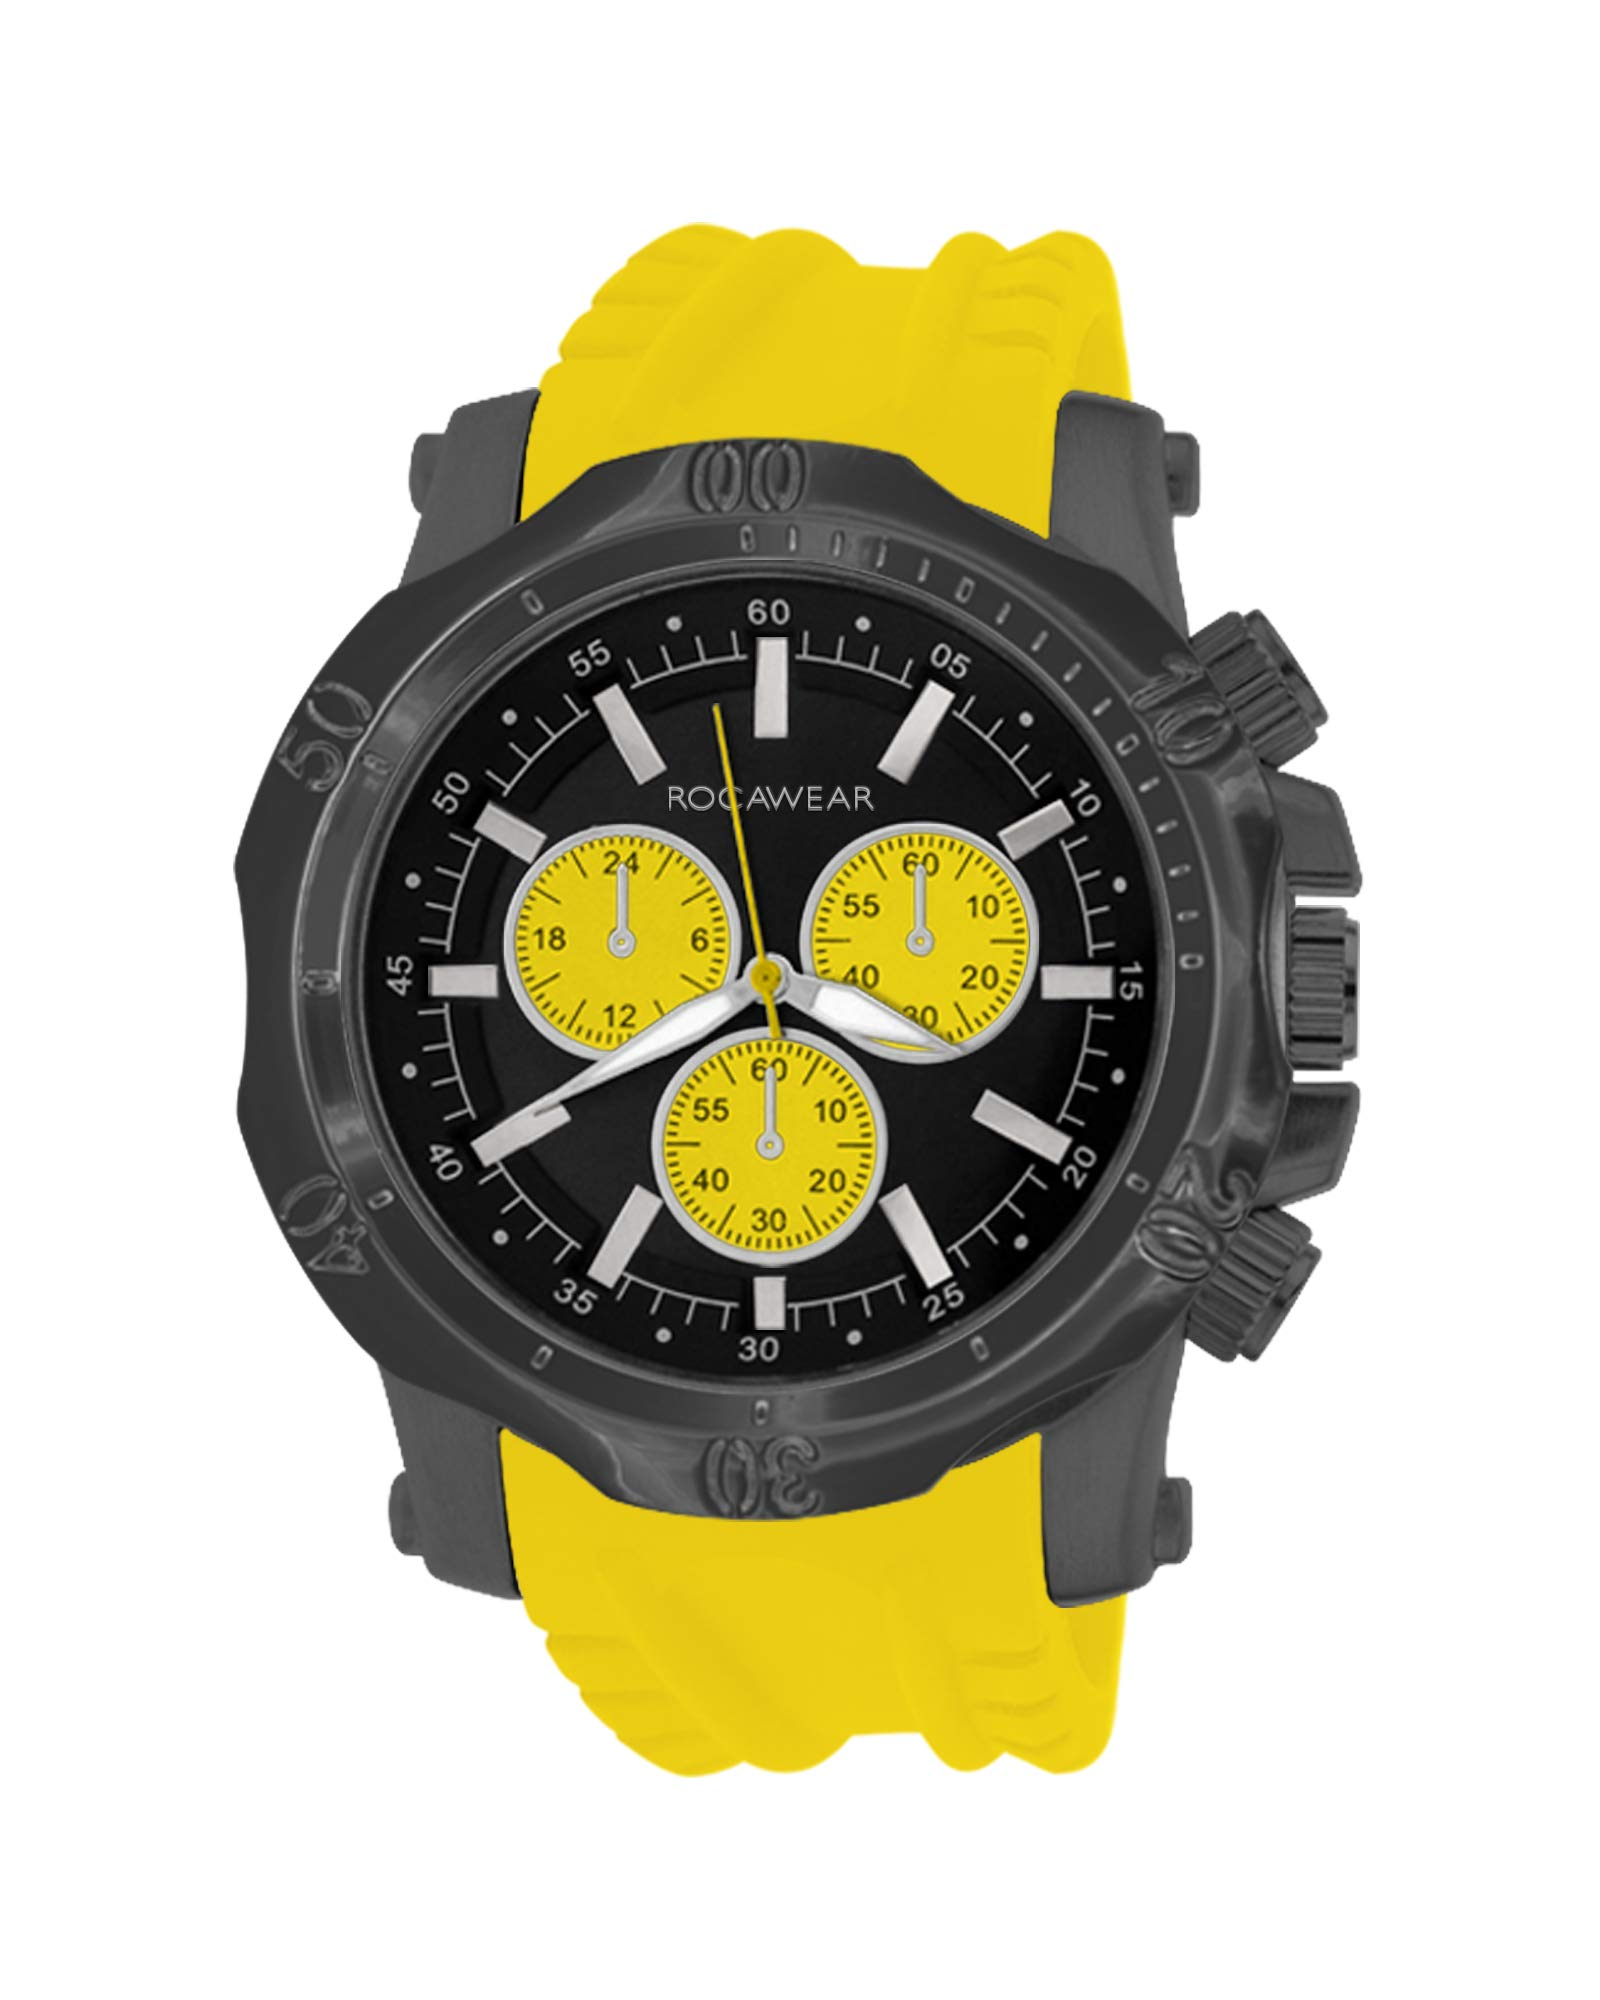 Rocawear Mens Quartz Metal Analog Watch with Oversized Dial (Yellow) by Rocawear